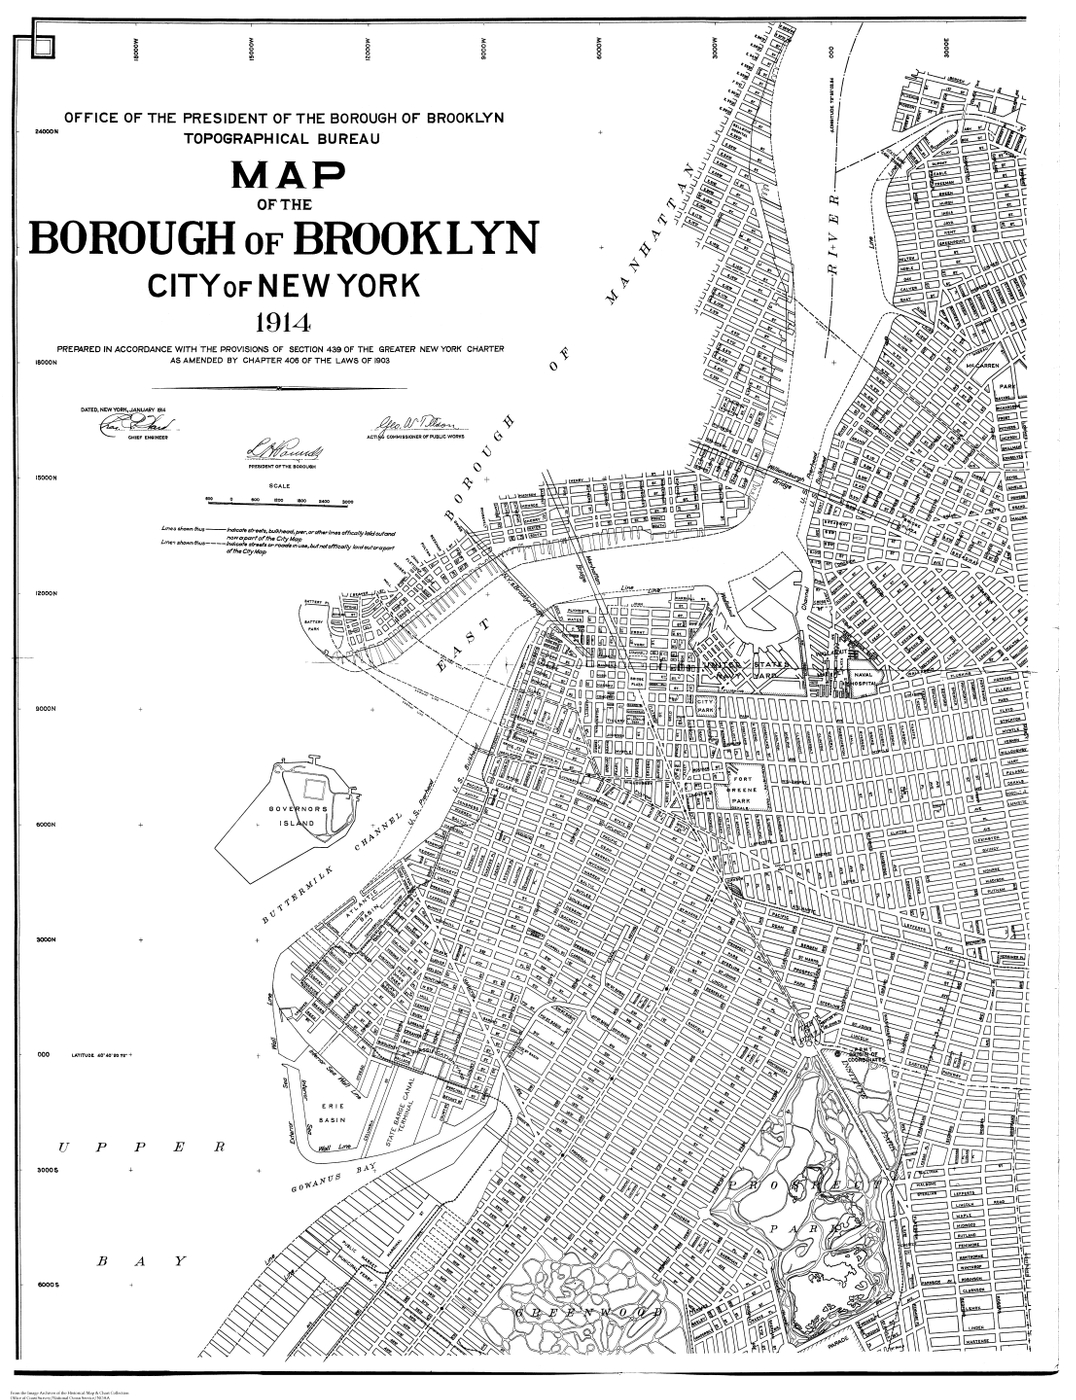 [map] [brooklyn] [new york] BOB